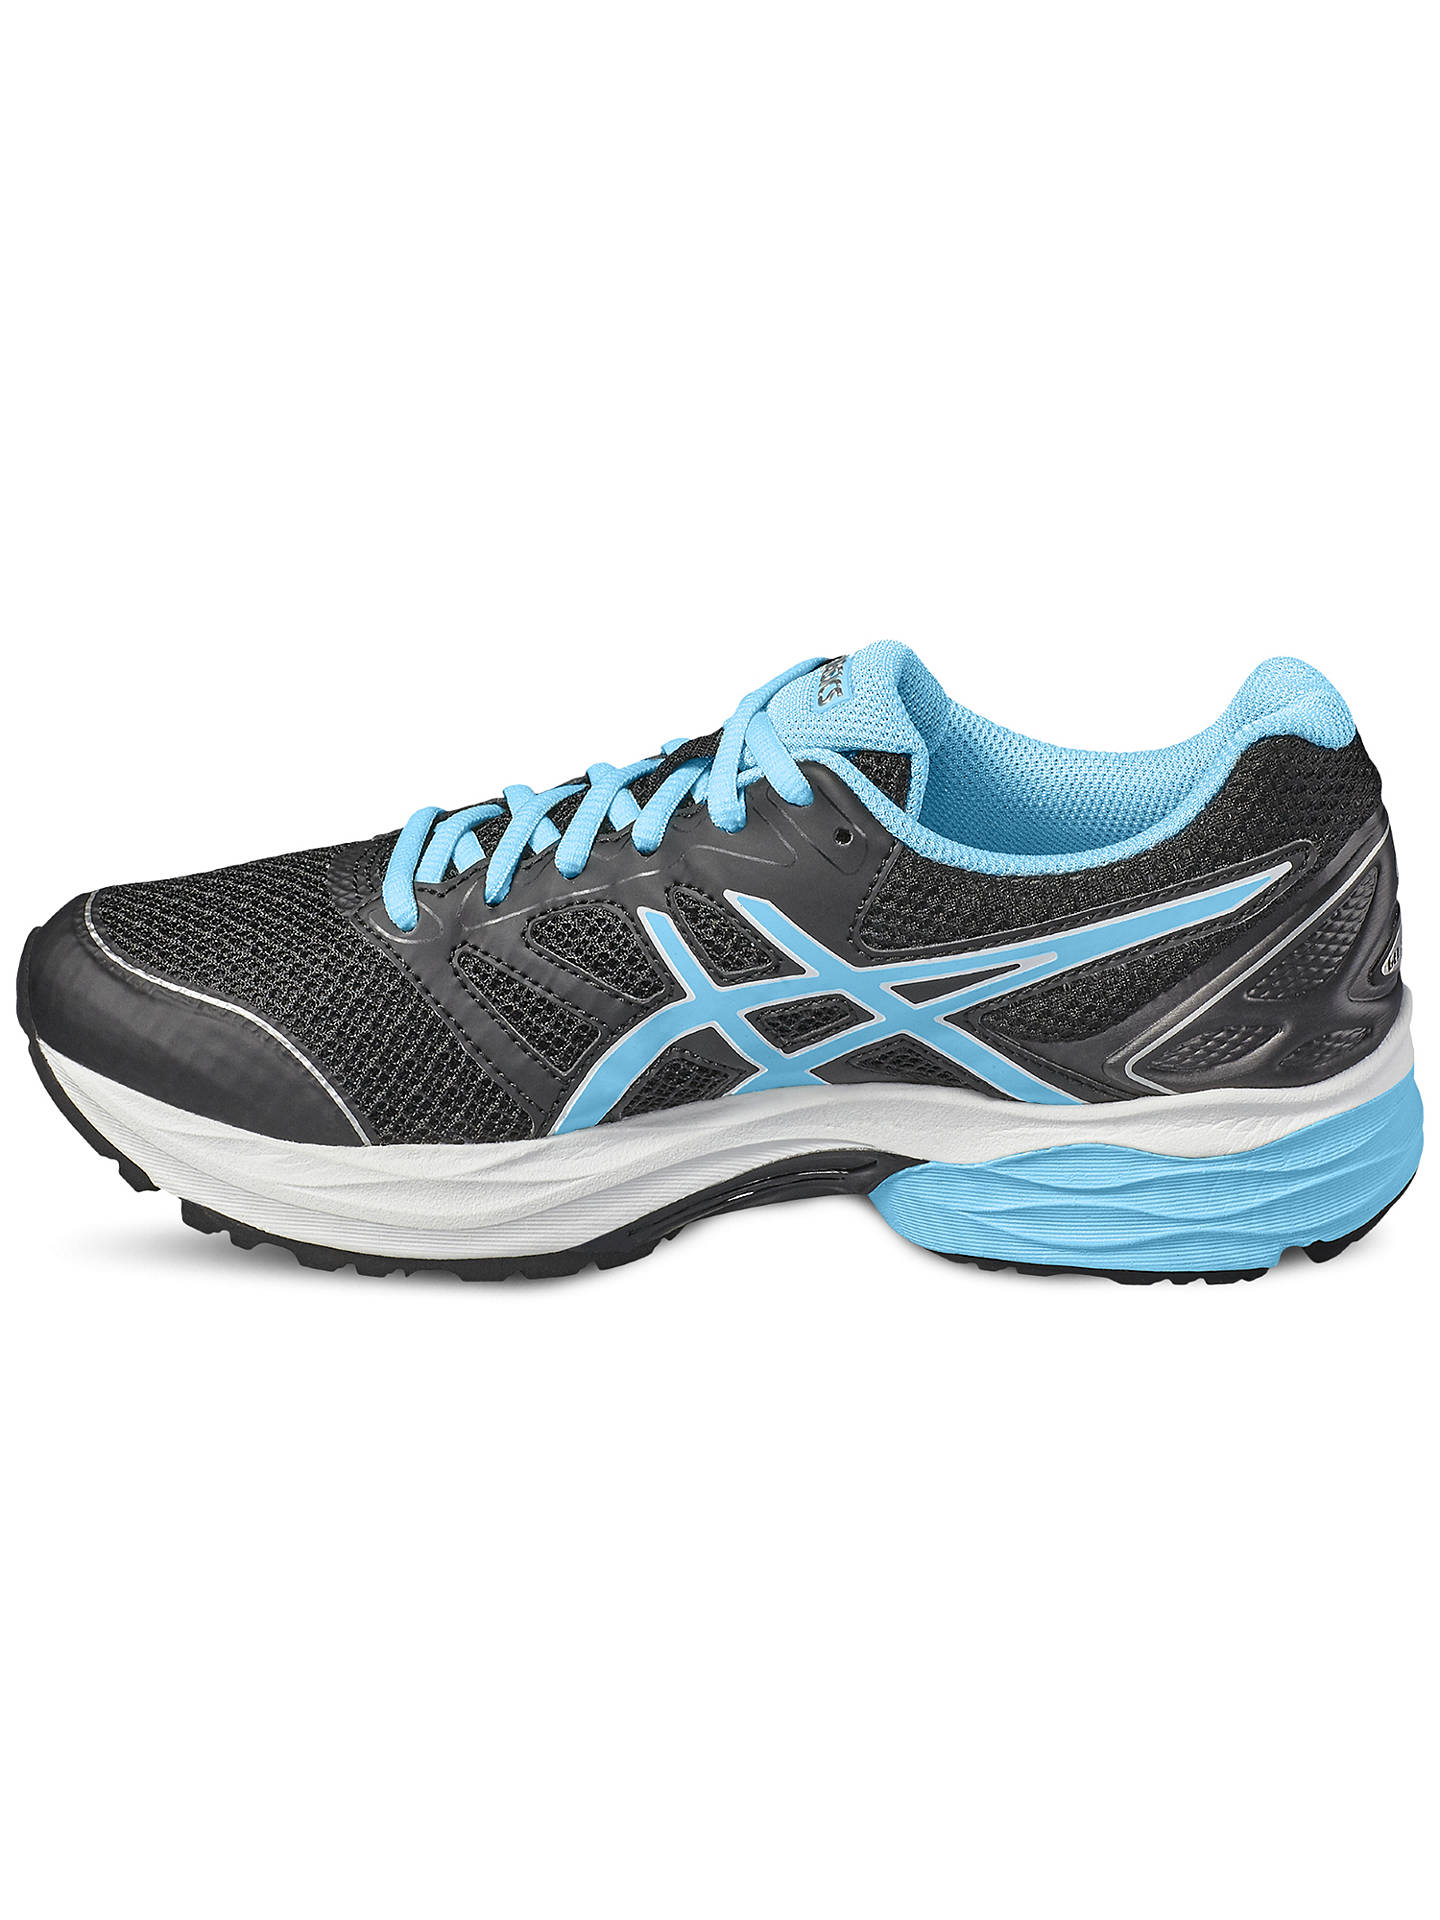 Asics Gel Pulse 8 Womens Cushioned Running Shoes Trainers Black Blue Women